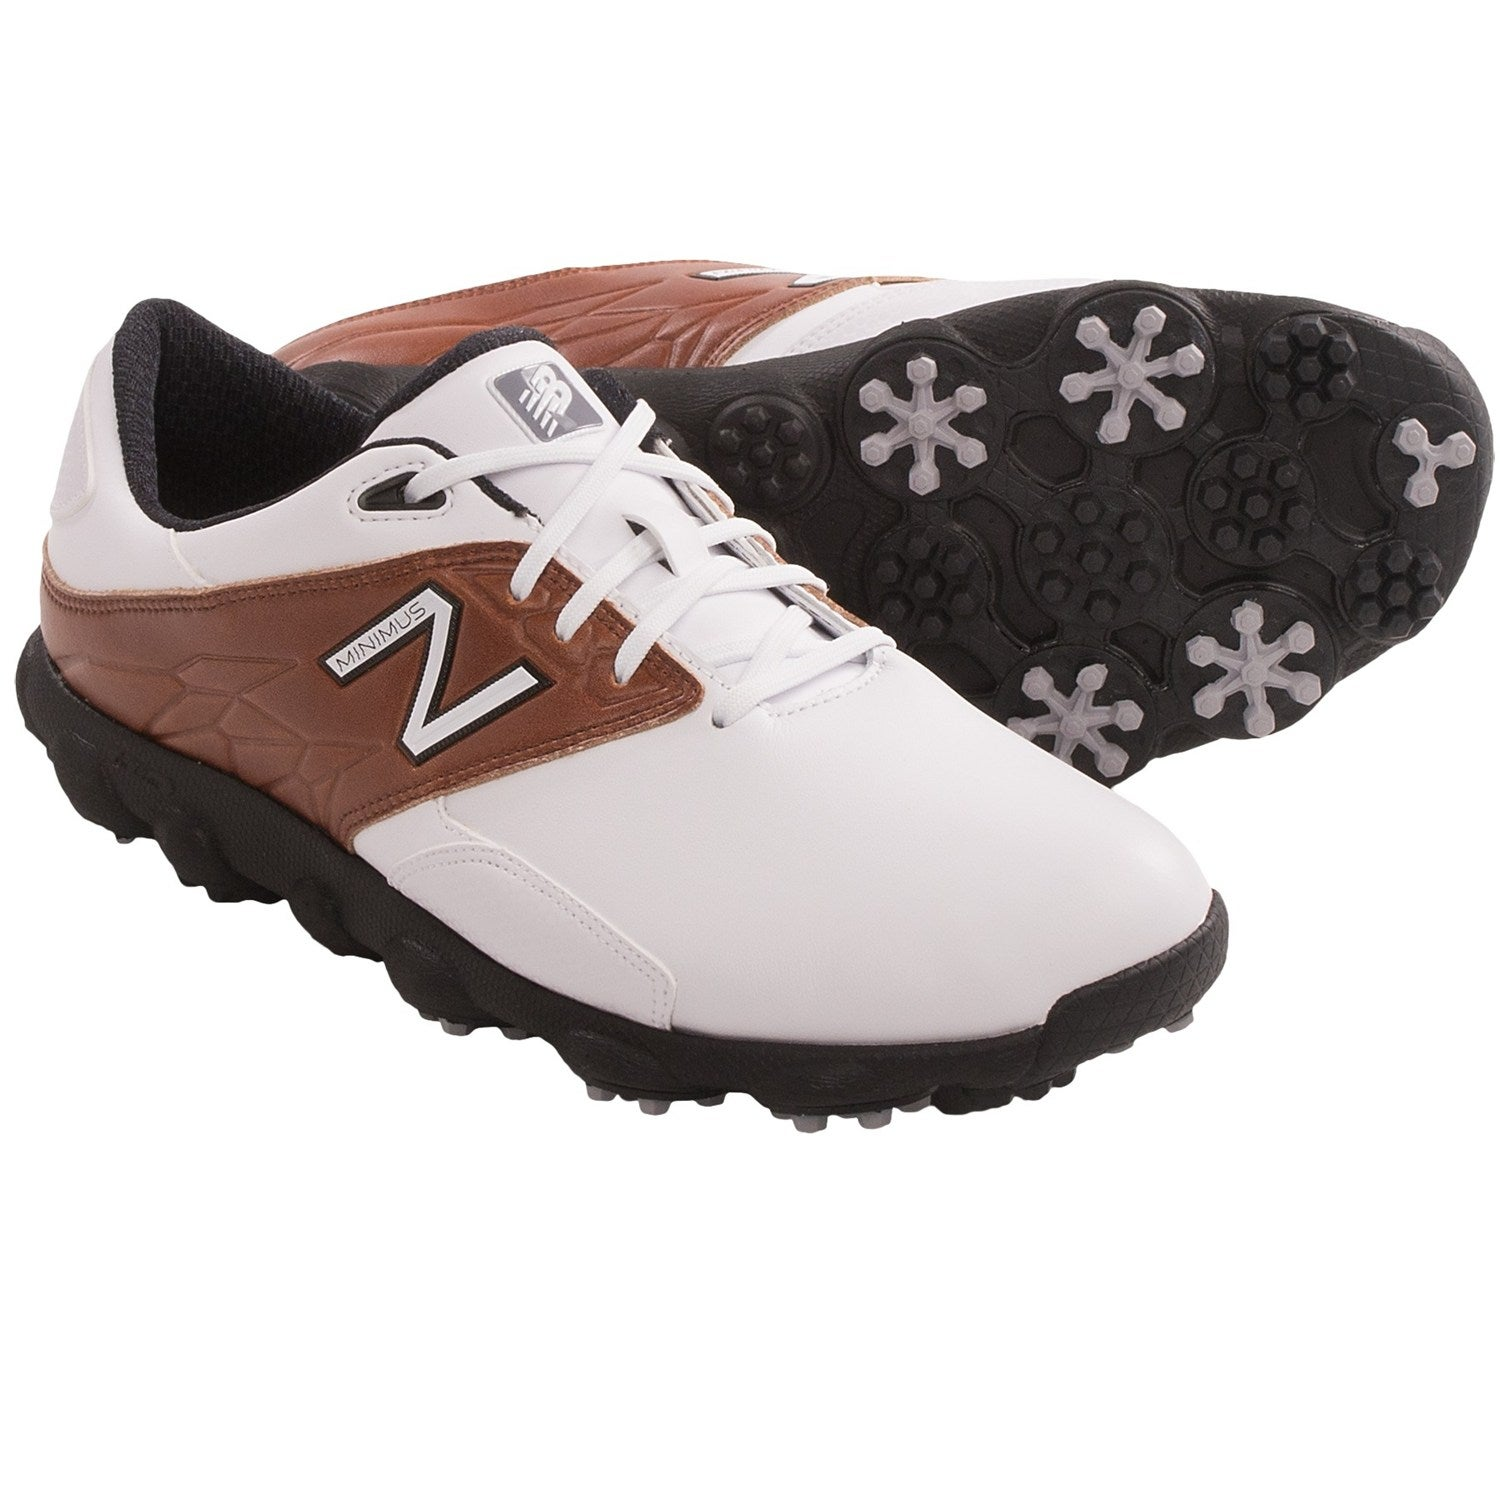 New Balance Men's Minimus LX White/ Brown Golf Shoes